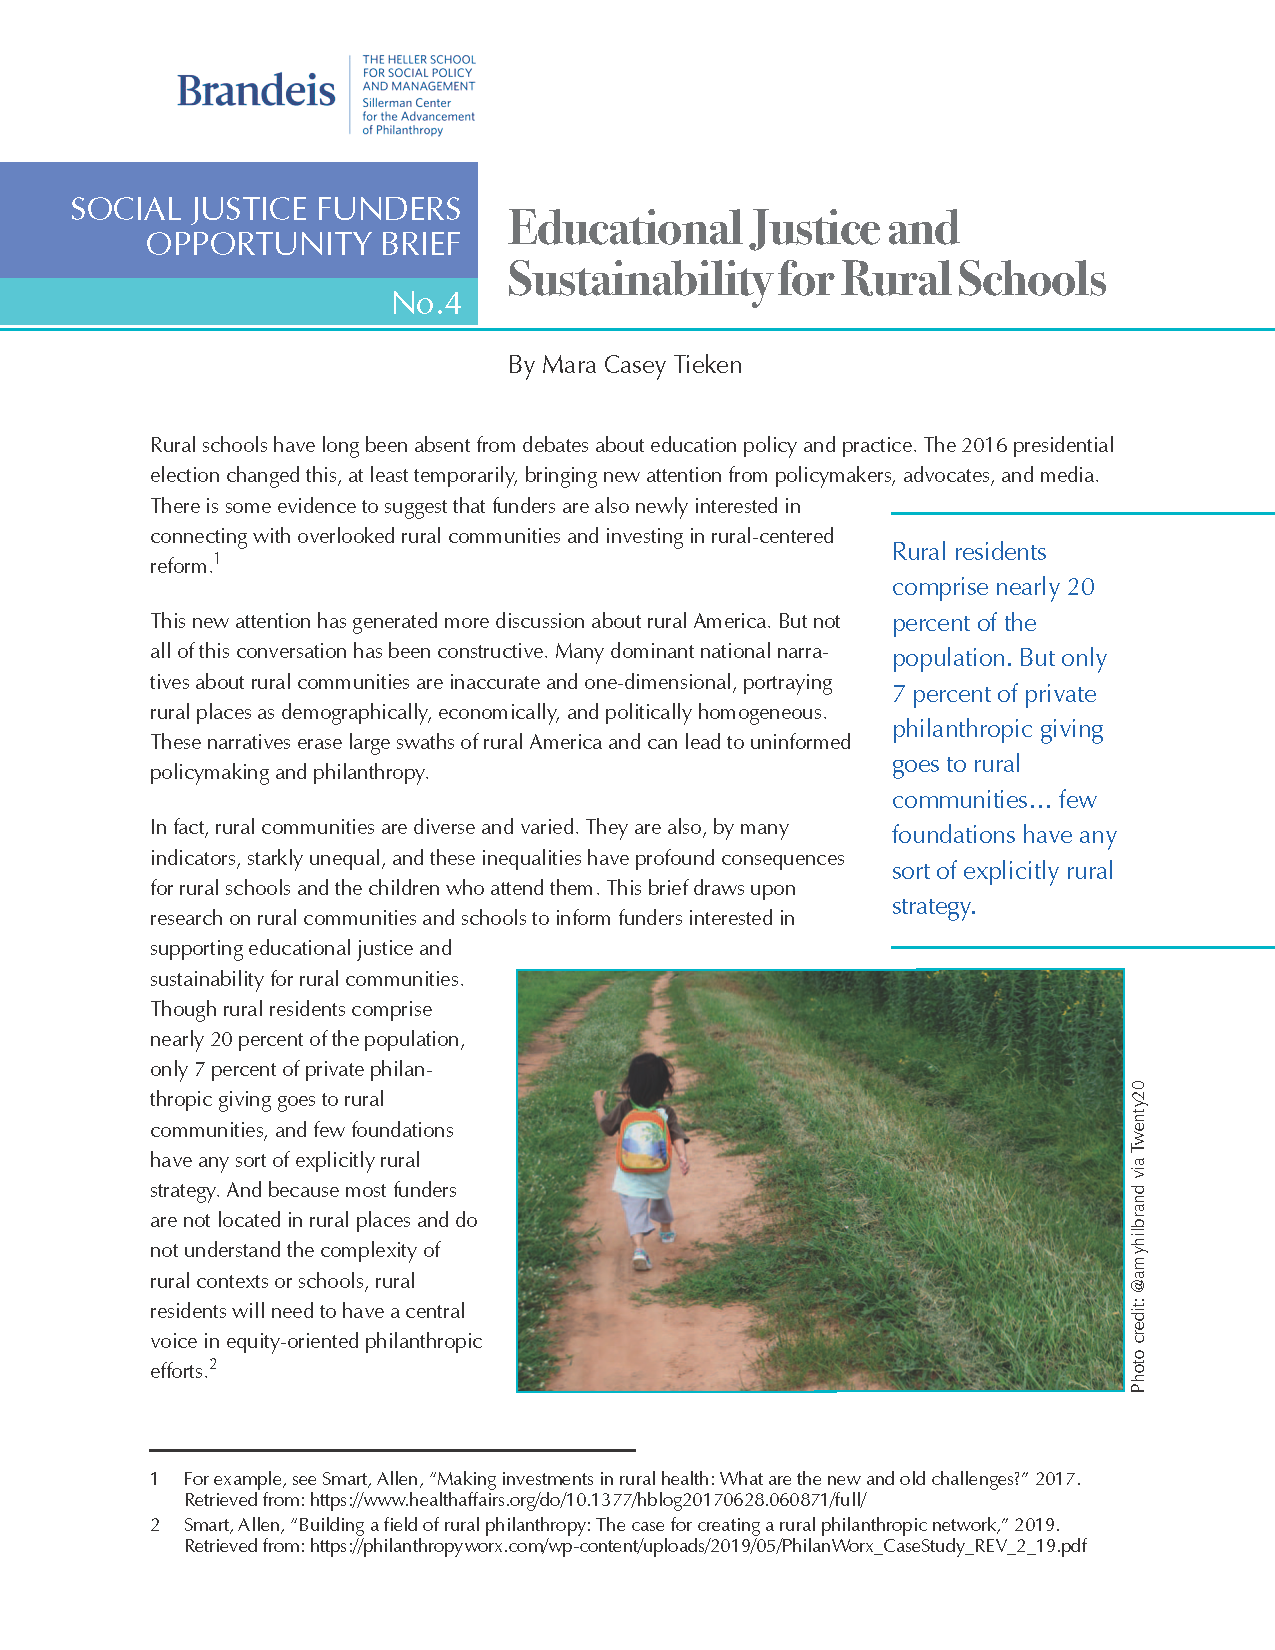 Educational Justice and Sustainability for Rural Schools